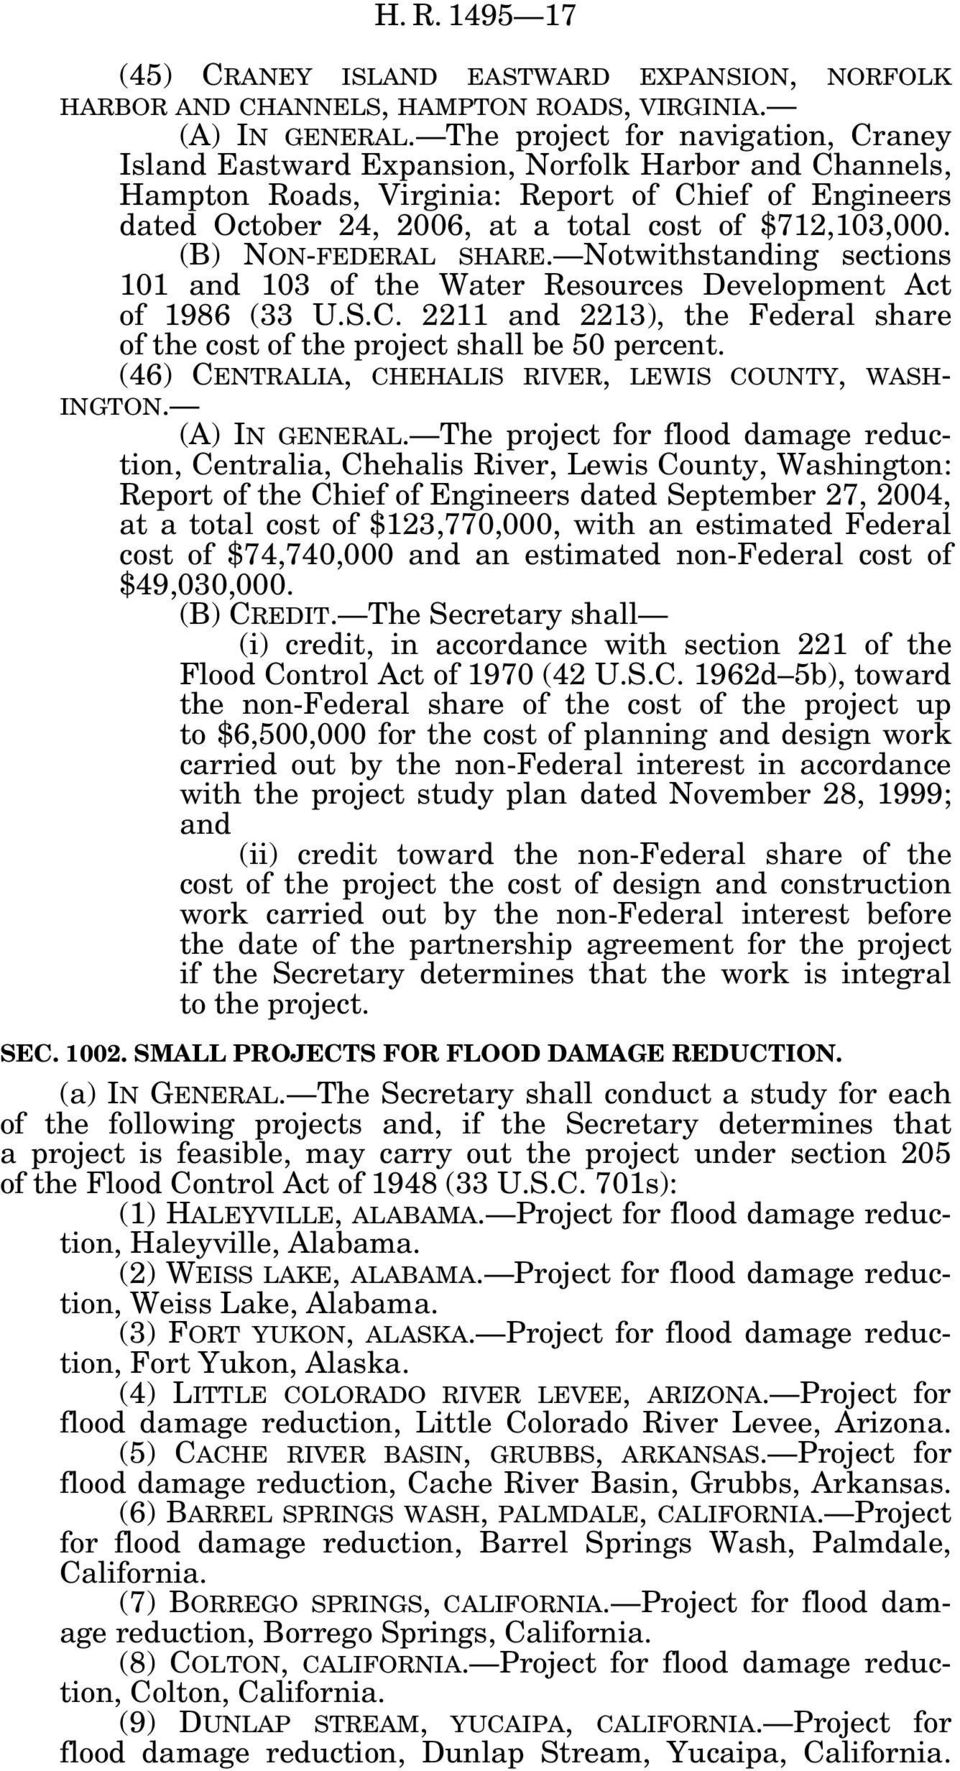 $712,103,000. (B) NON-FEDERAL SHARE. Notwithstanding sections 101 and 103 of the Water Resources Development Act of 1986 (33 U.S.C.